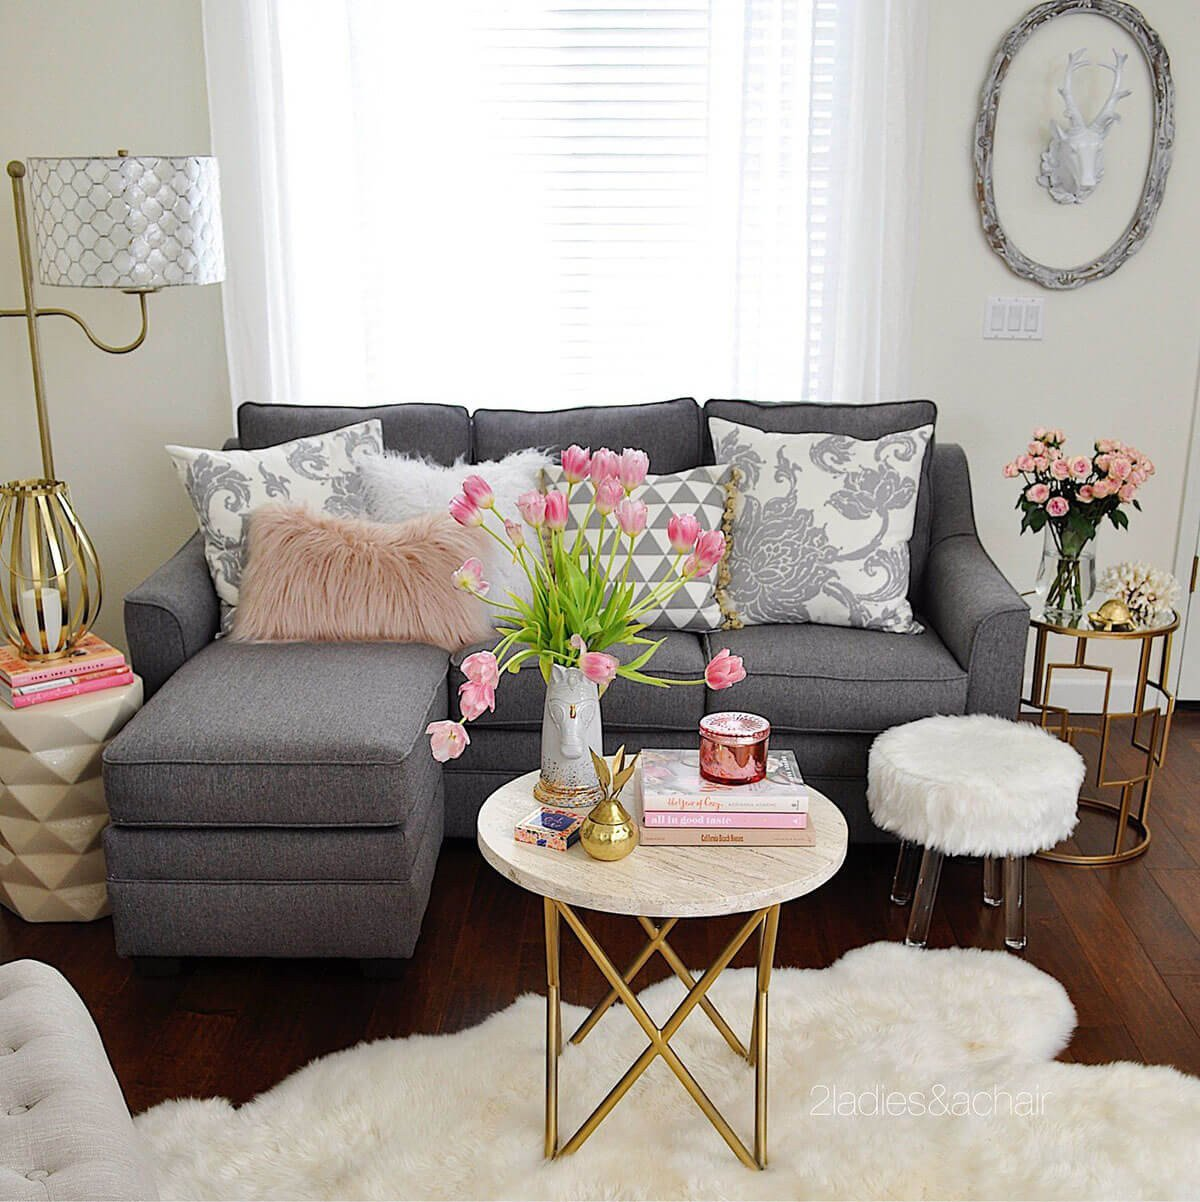 Small Living Roompaint Ideas Unique 25 Best Small Living Room Decor and Design Ideas for 2019